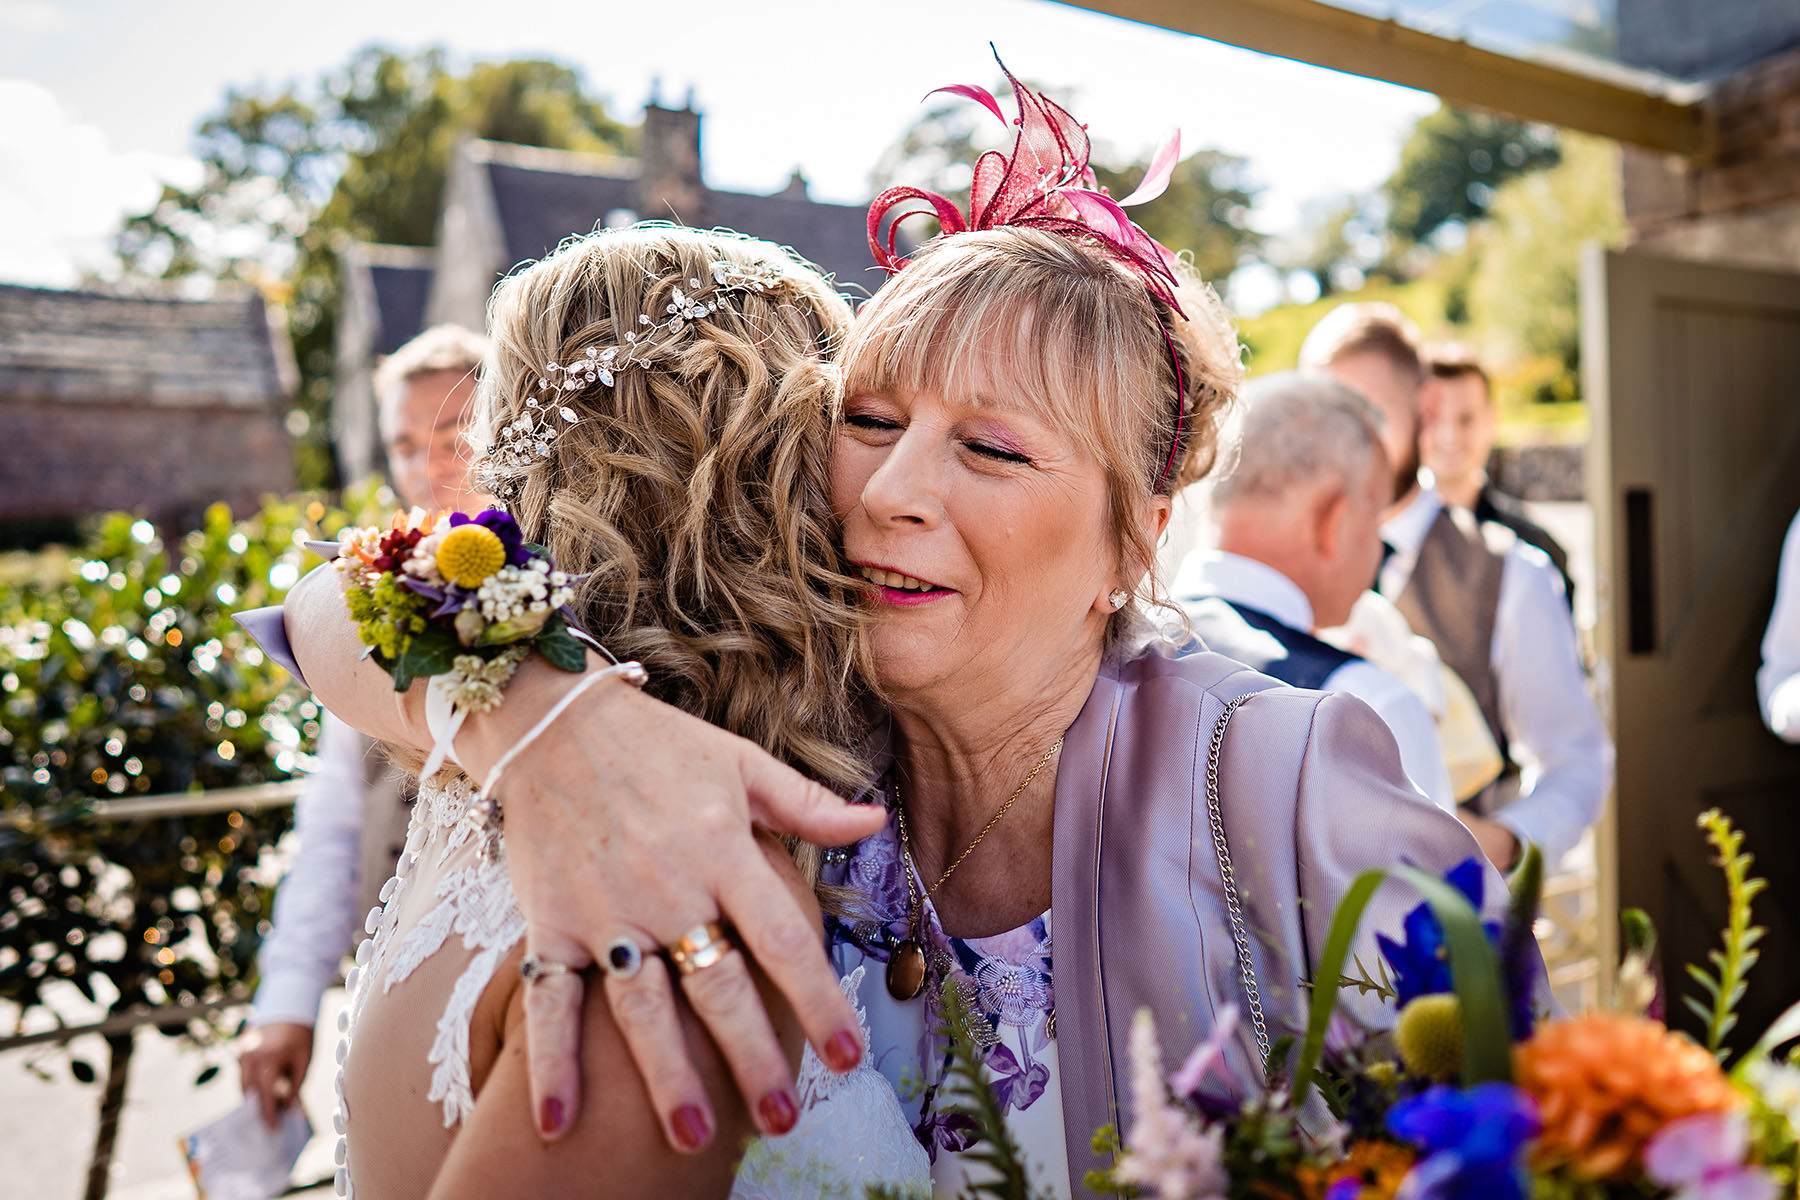 mum hugging her daughter after just getting married